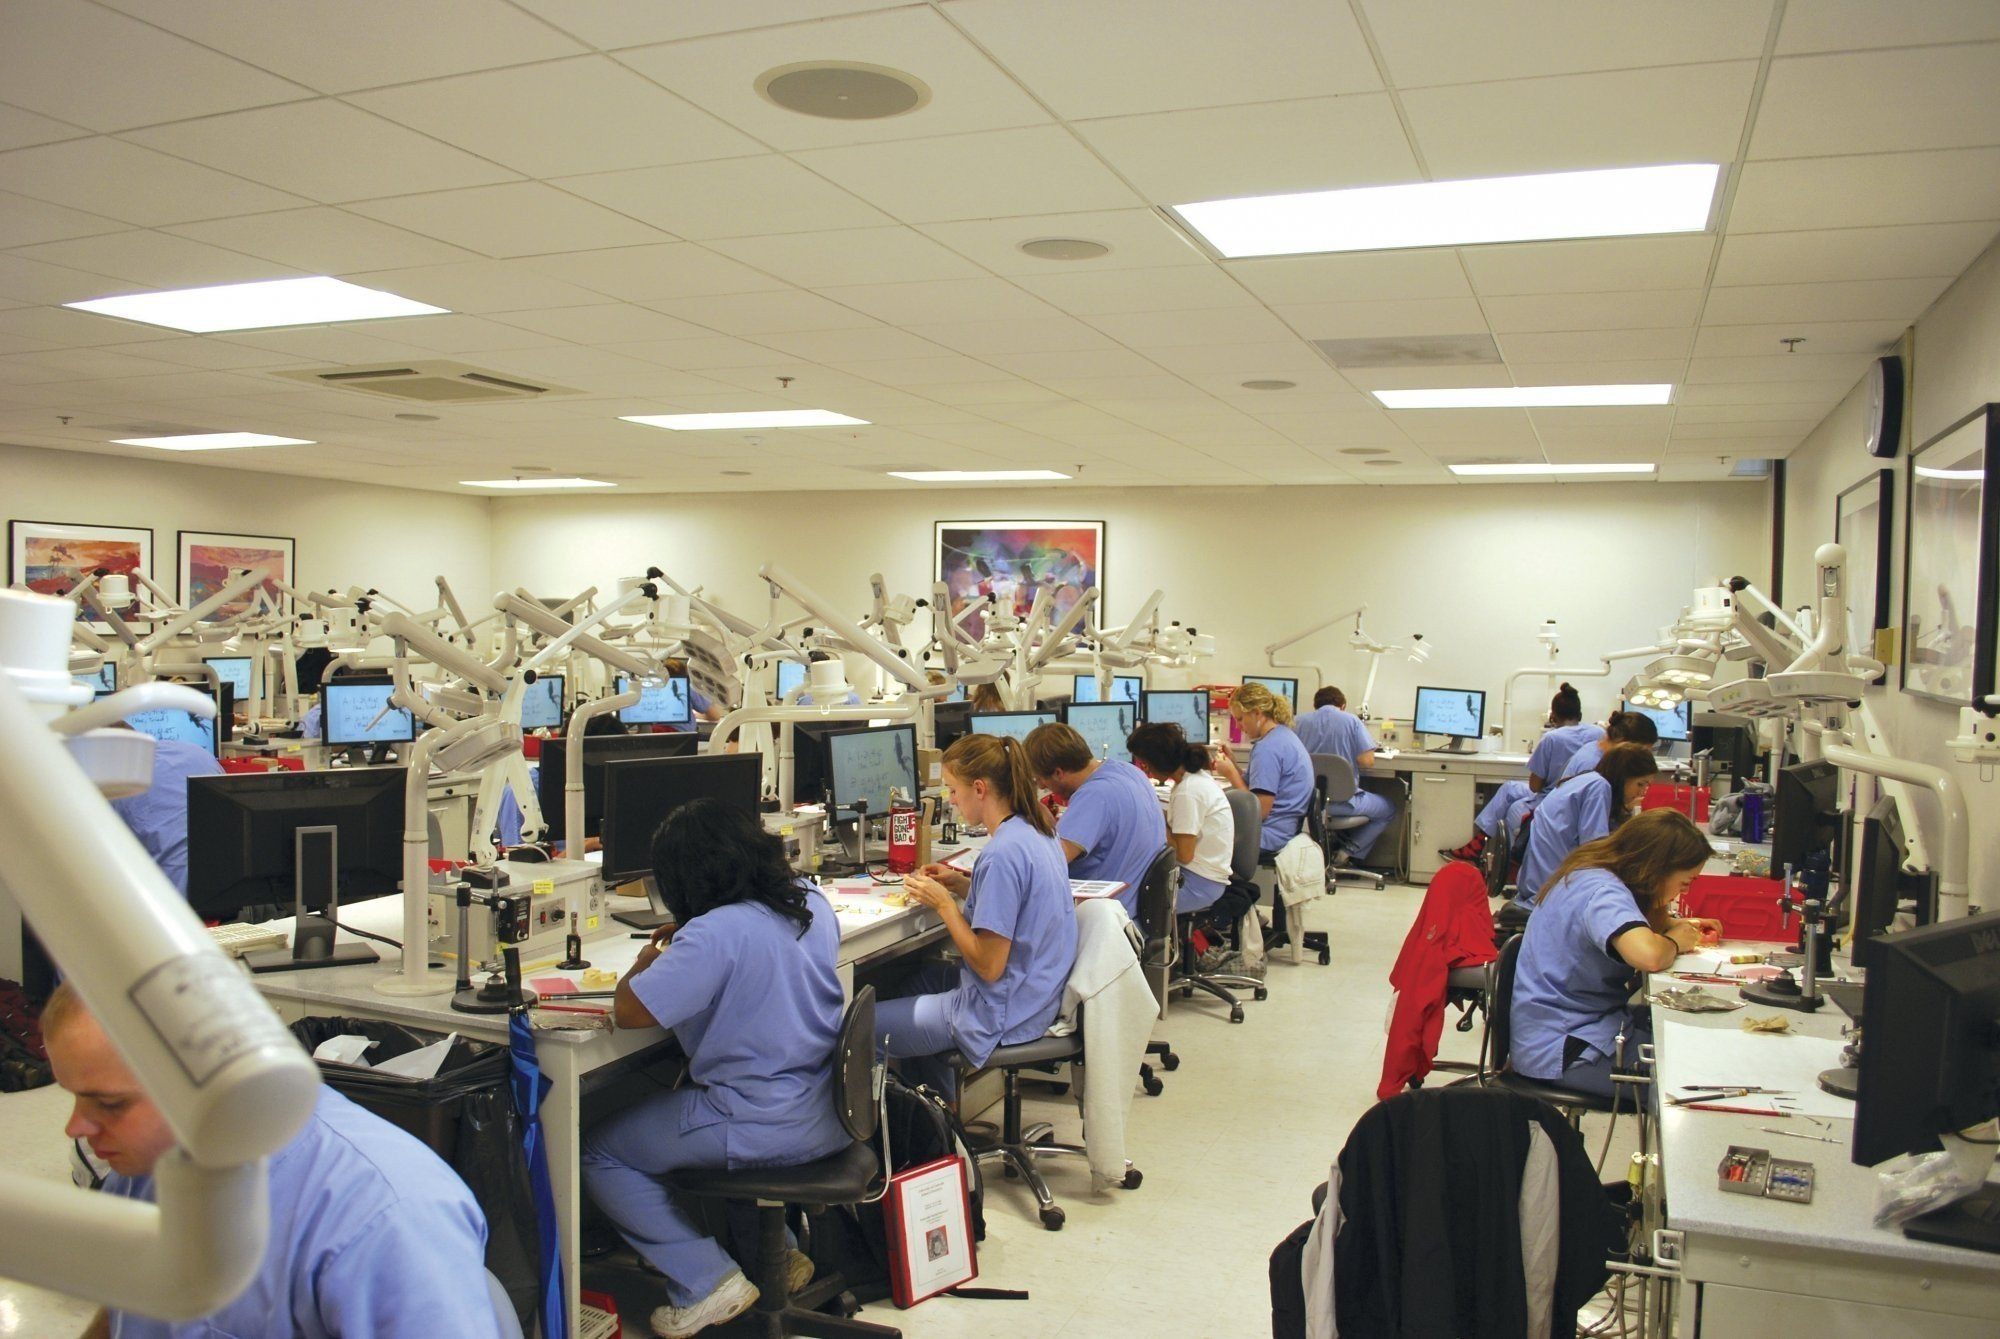 university-of-louisville-school-of-dentistry-classroom-students